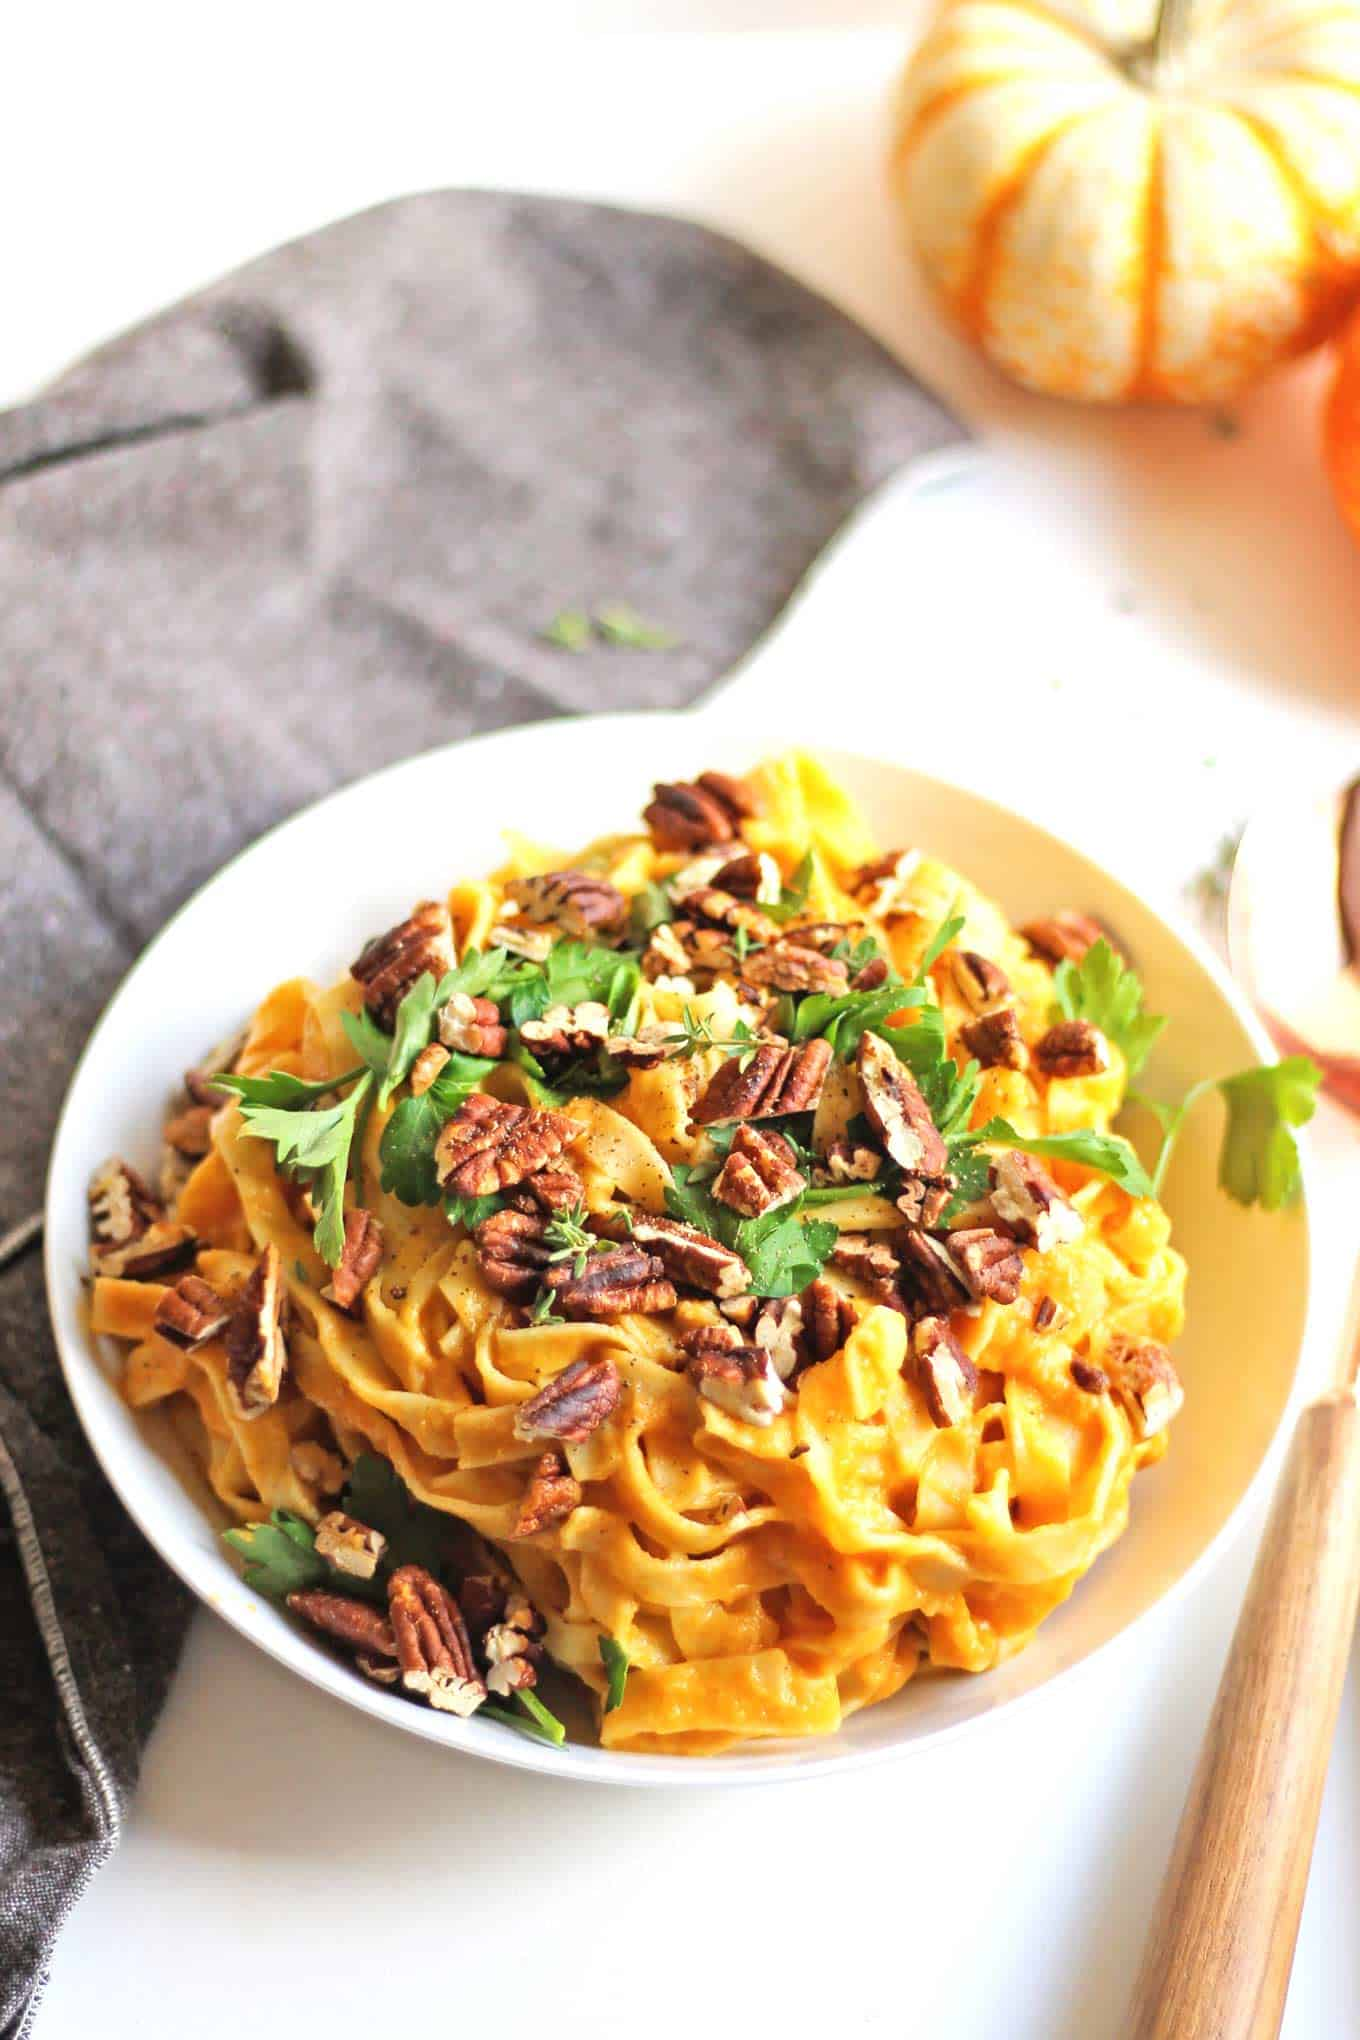 Skinny cauliflower pumpkin fettuccine alfredo recipe! A healthy, fall version of the classic alfredo pasta. Topped with toasted pecans, fresh parsley, and parmesan cheese. The perfect fall dinner! // Rhubarbarians . . #caulifloweralfredo #pumpkinalfredo #skinnyrecipes #healthyrecipes #fallpasta #pasta #falldinner #fallmeal #pumpkin